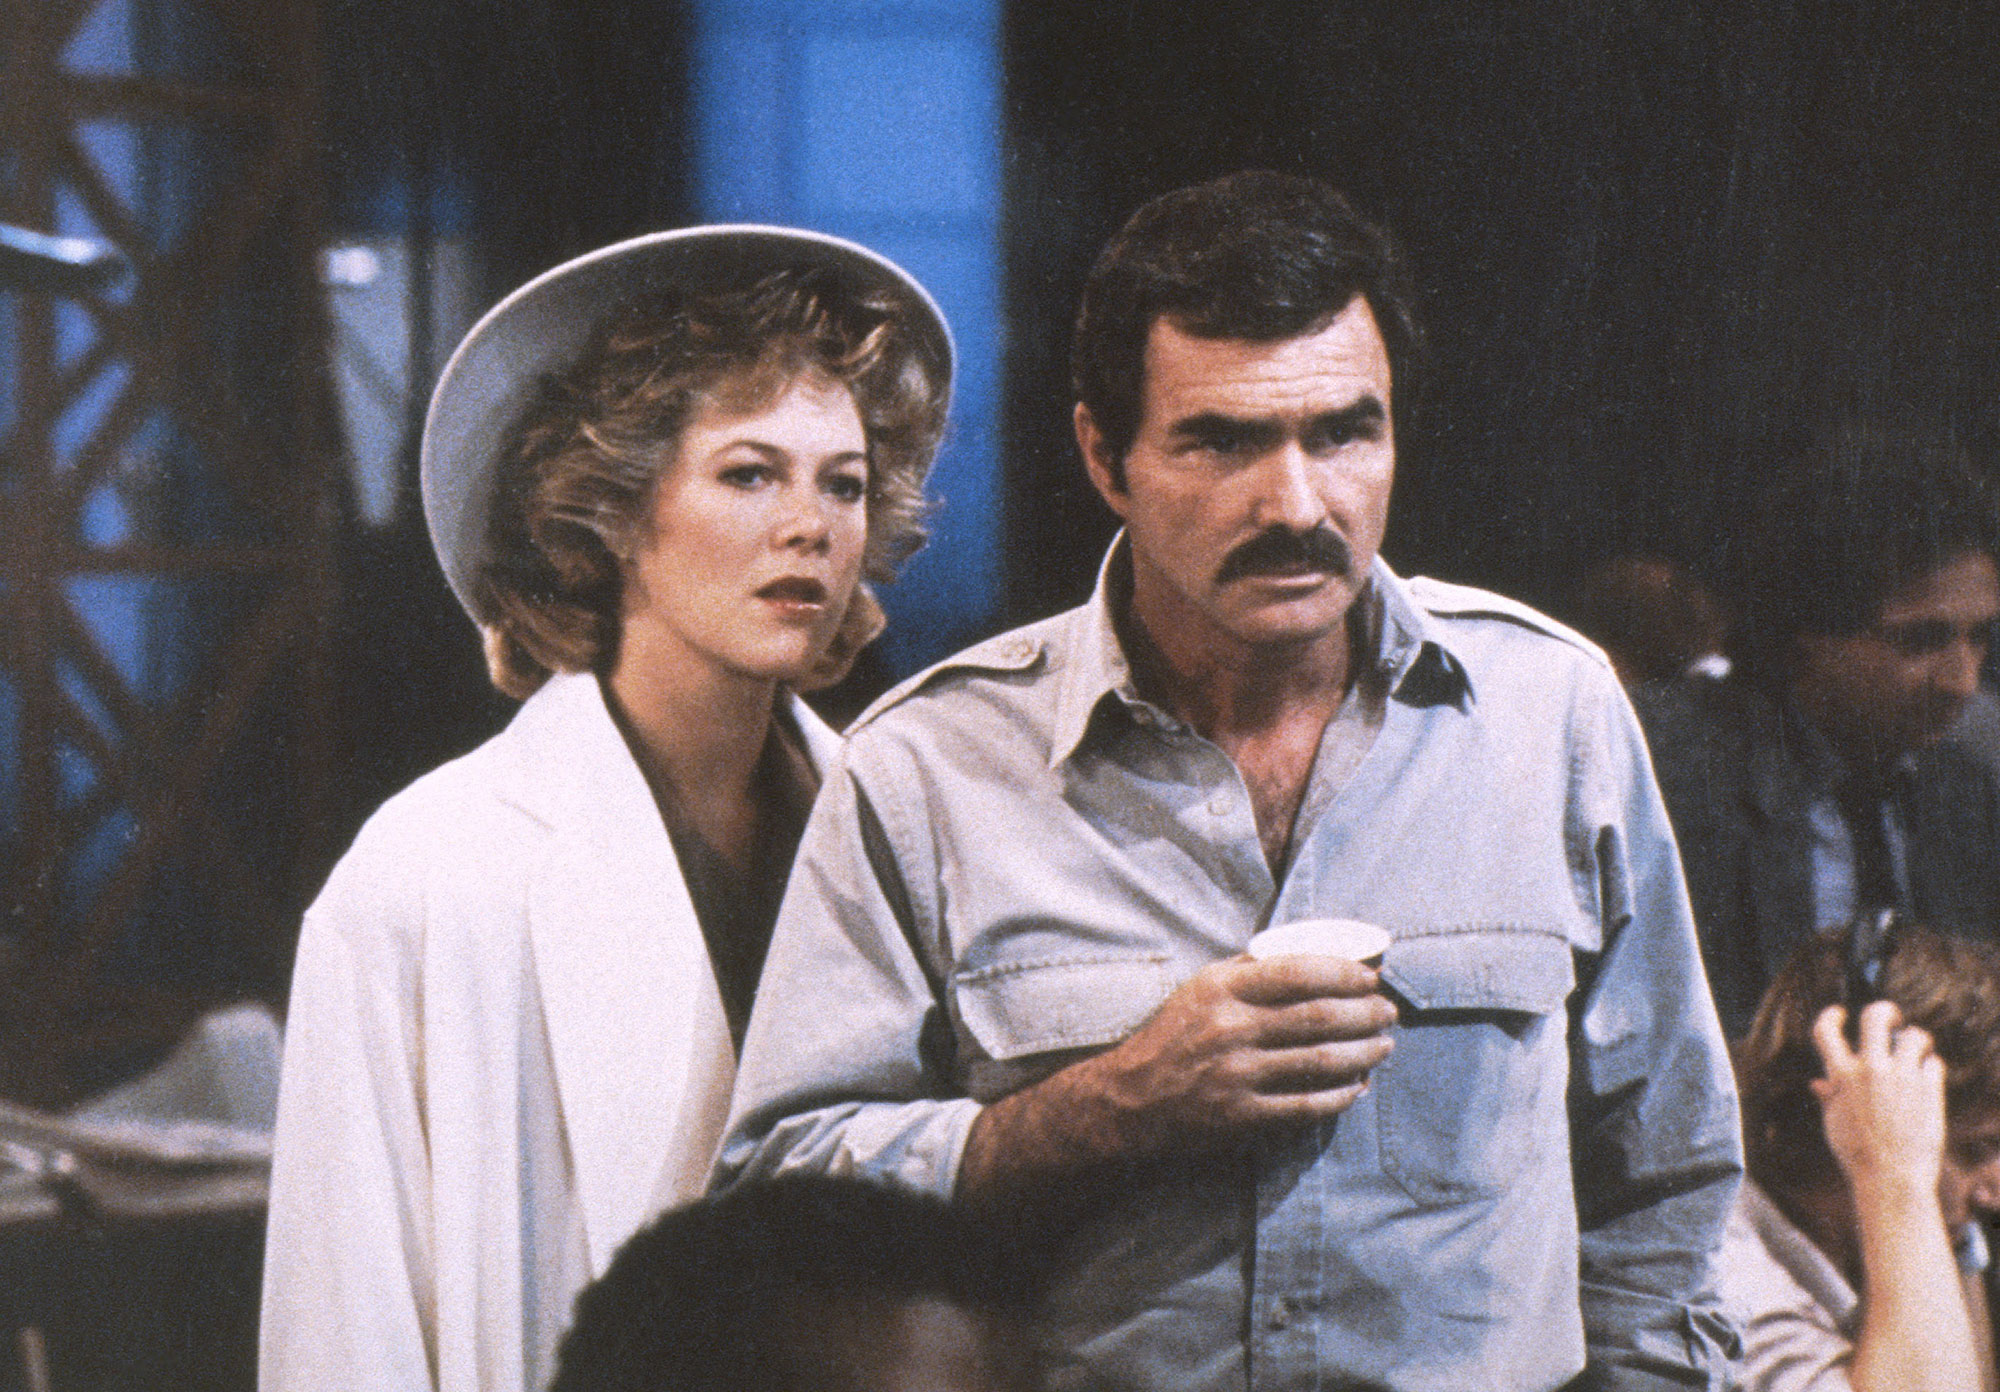 SWITCHING CHANNELS, US lobbycard, from left: Kathleen Turner, Burt Reynolds, 1988, © TriStar/courtes